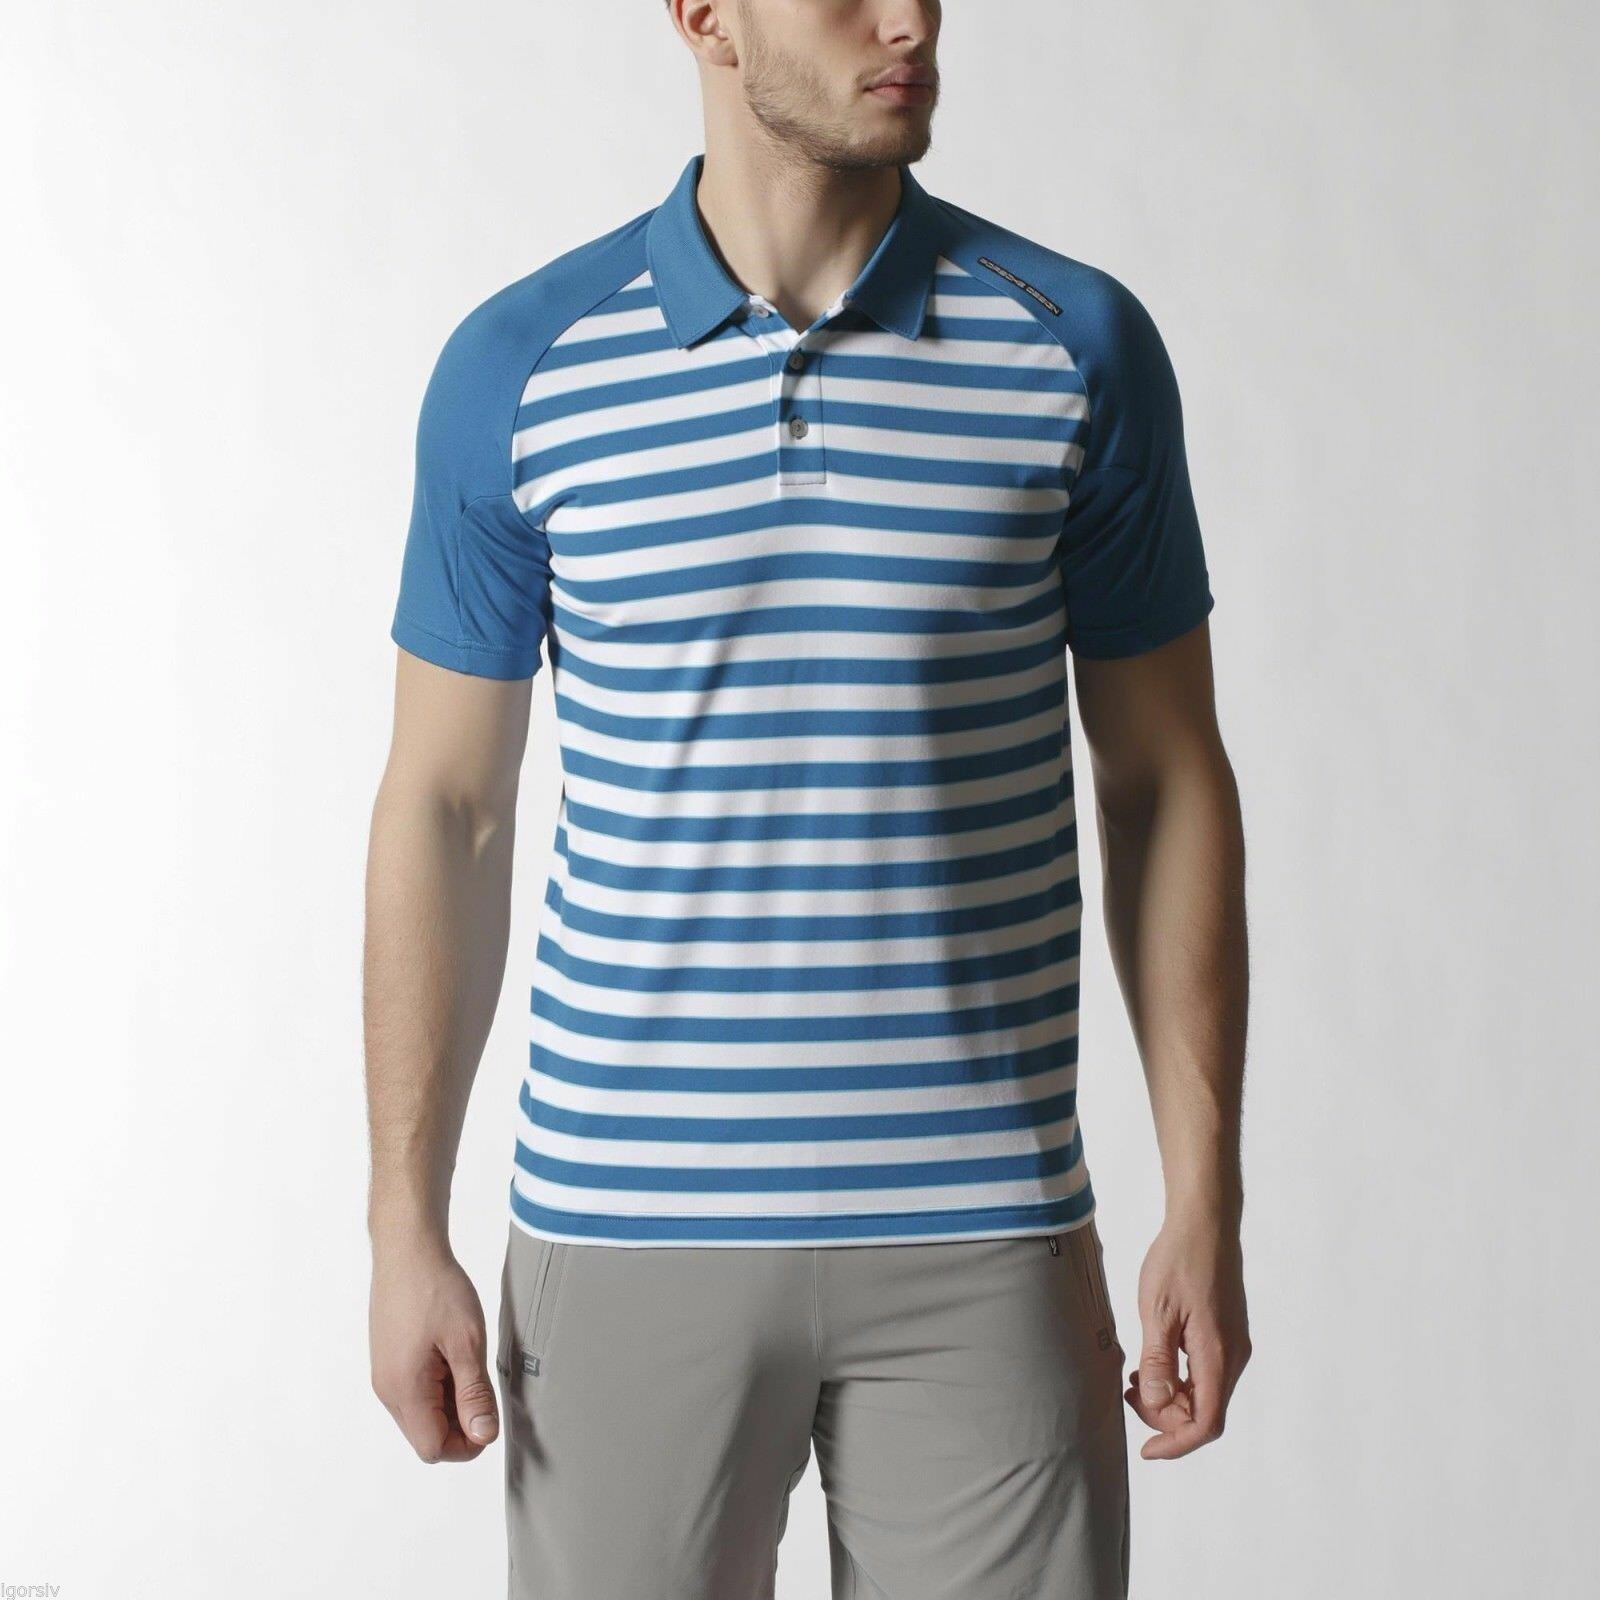 Adidas Porsche Design - STRIPED POLO SHIRT - L XL